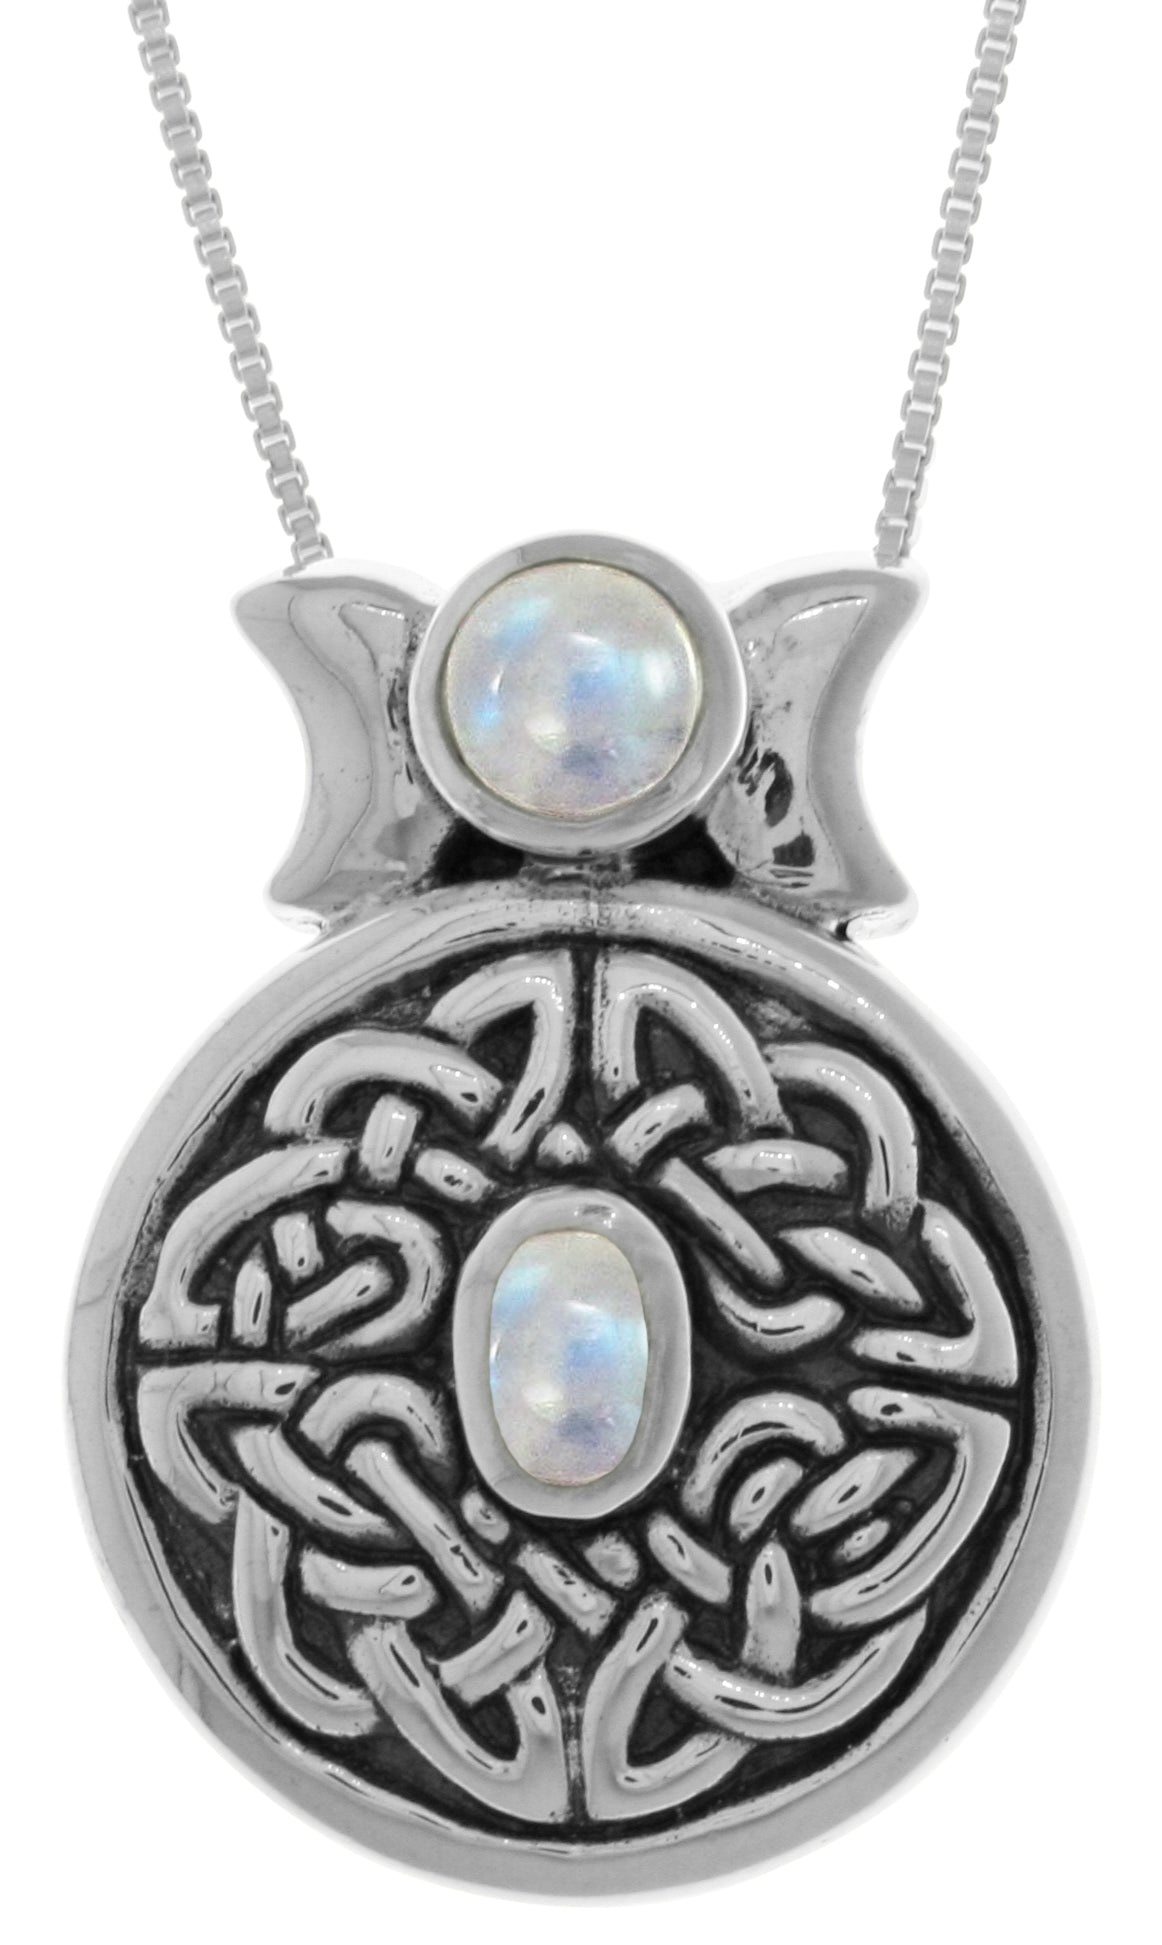 Jewelry trends sterling silver round celtic moon goddess pendant jewelry trends sterling silver round celtic moon goddess pendant with moonstone on 18 inch box chain necklace aloadofball Image collections